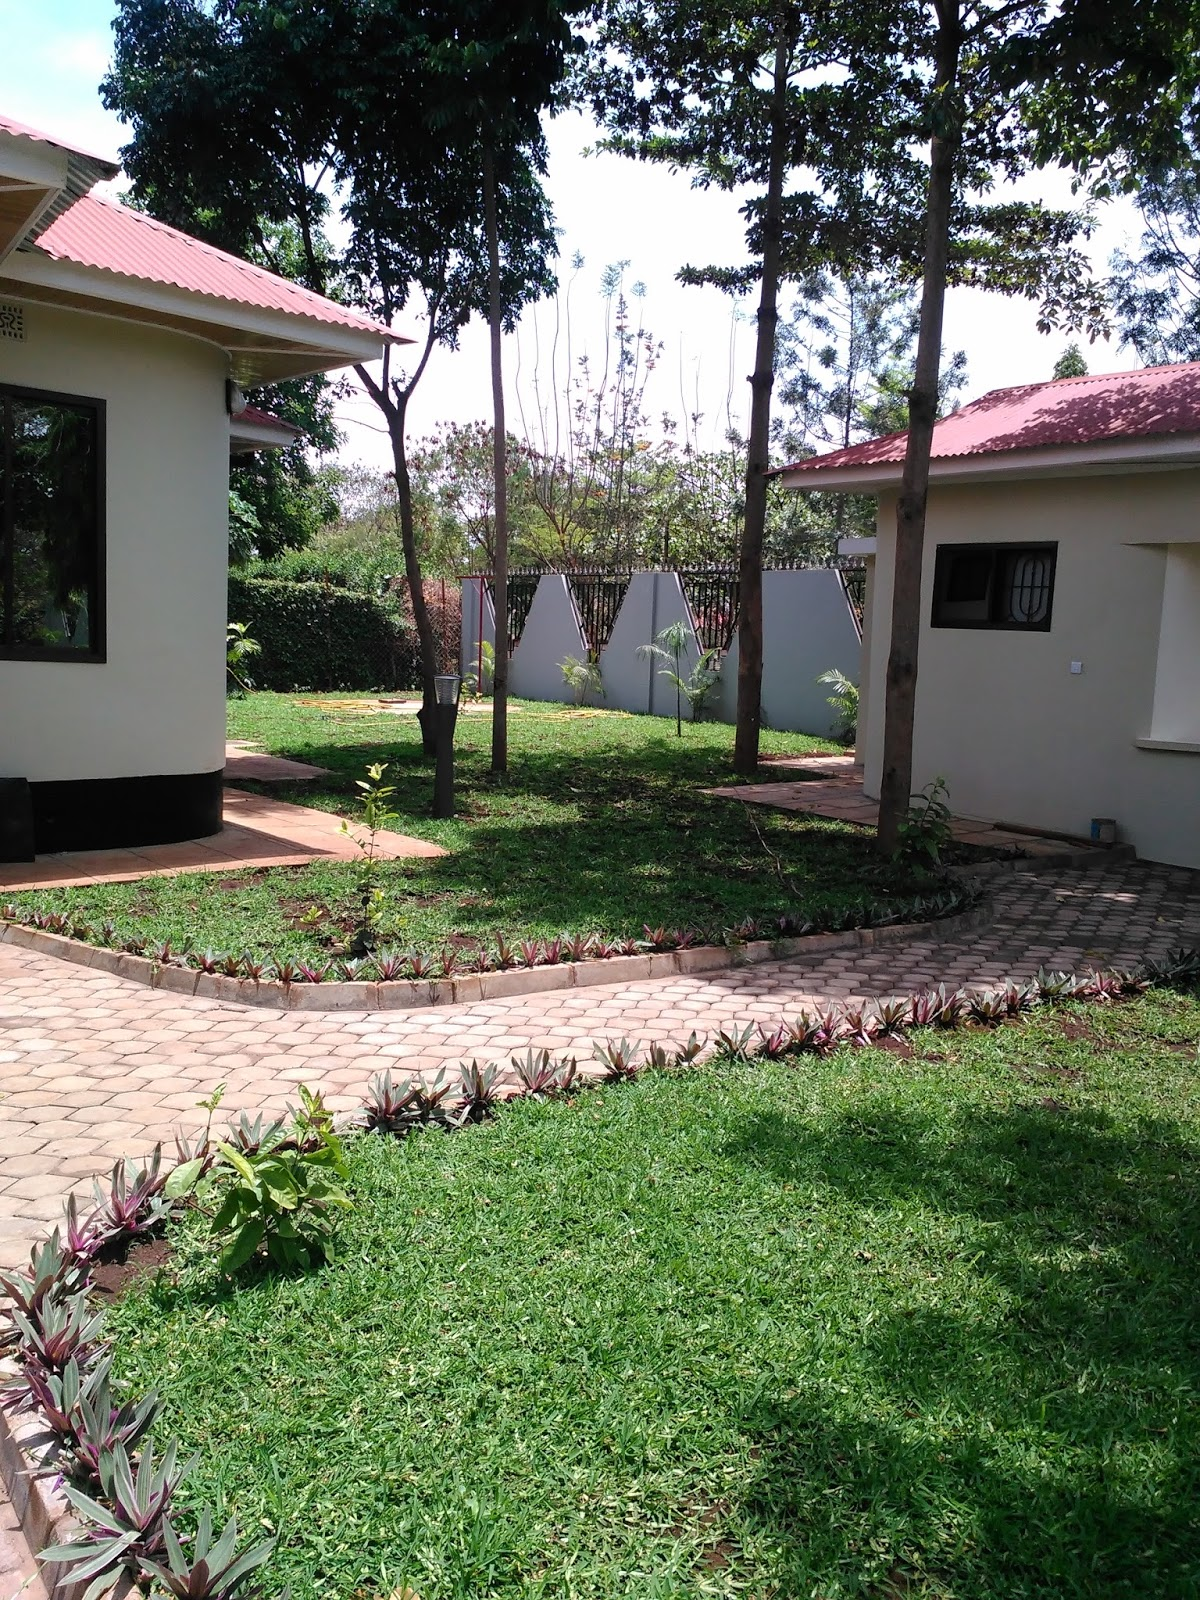 Rent house in tanzania arusha rent houses houses for sale for Houses for sale with suites